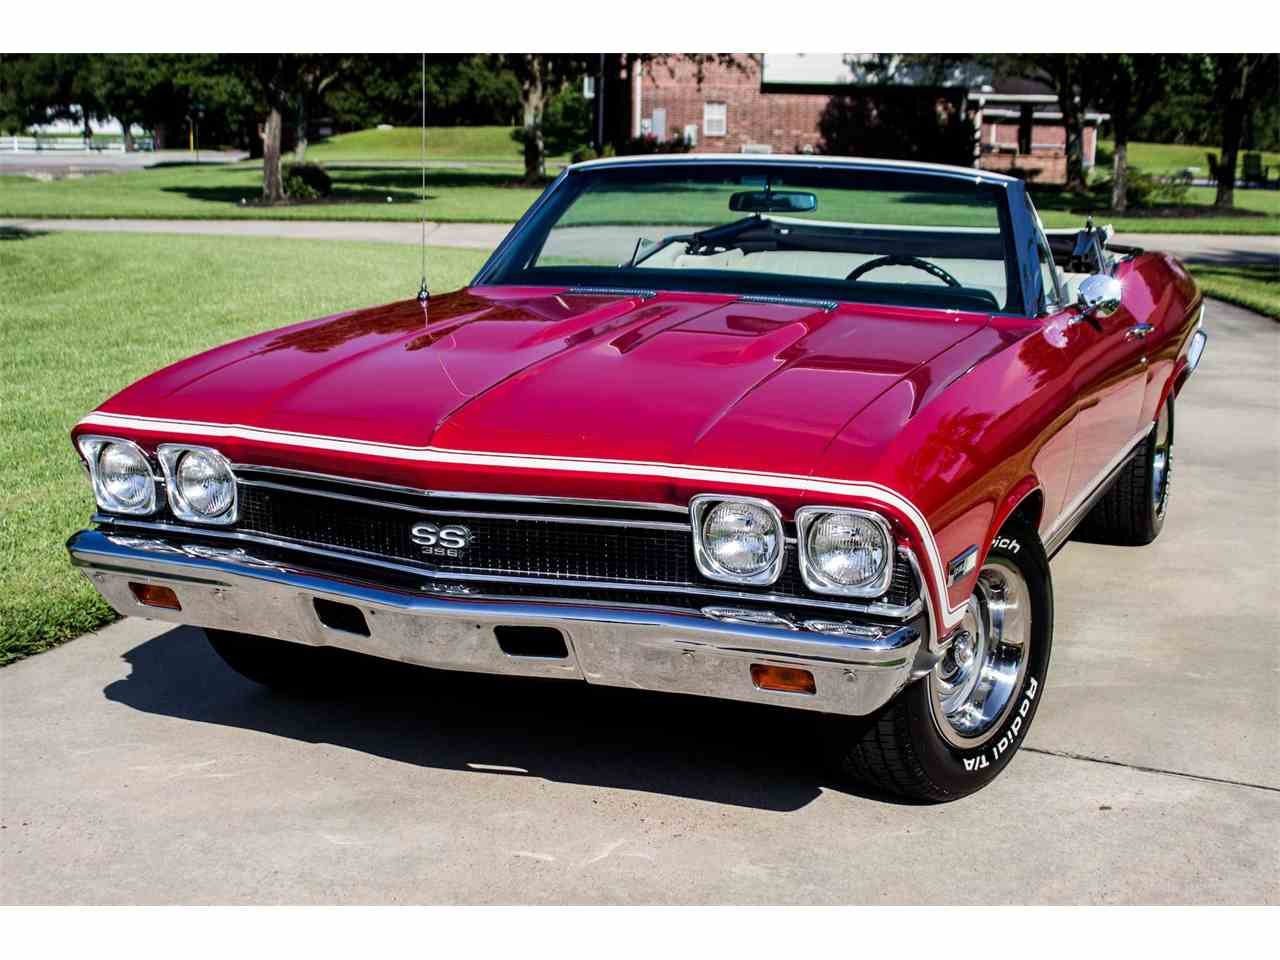 1968 chevelle ss images galleries with a bite. Black Bedroom Furniture Sets. Home Design Ideas